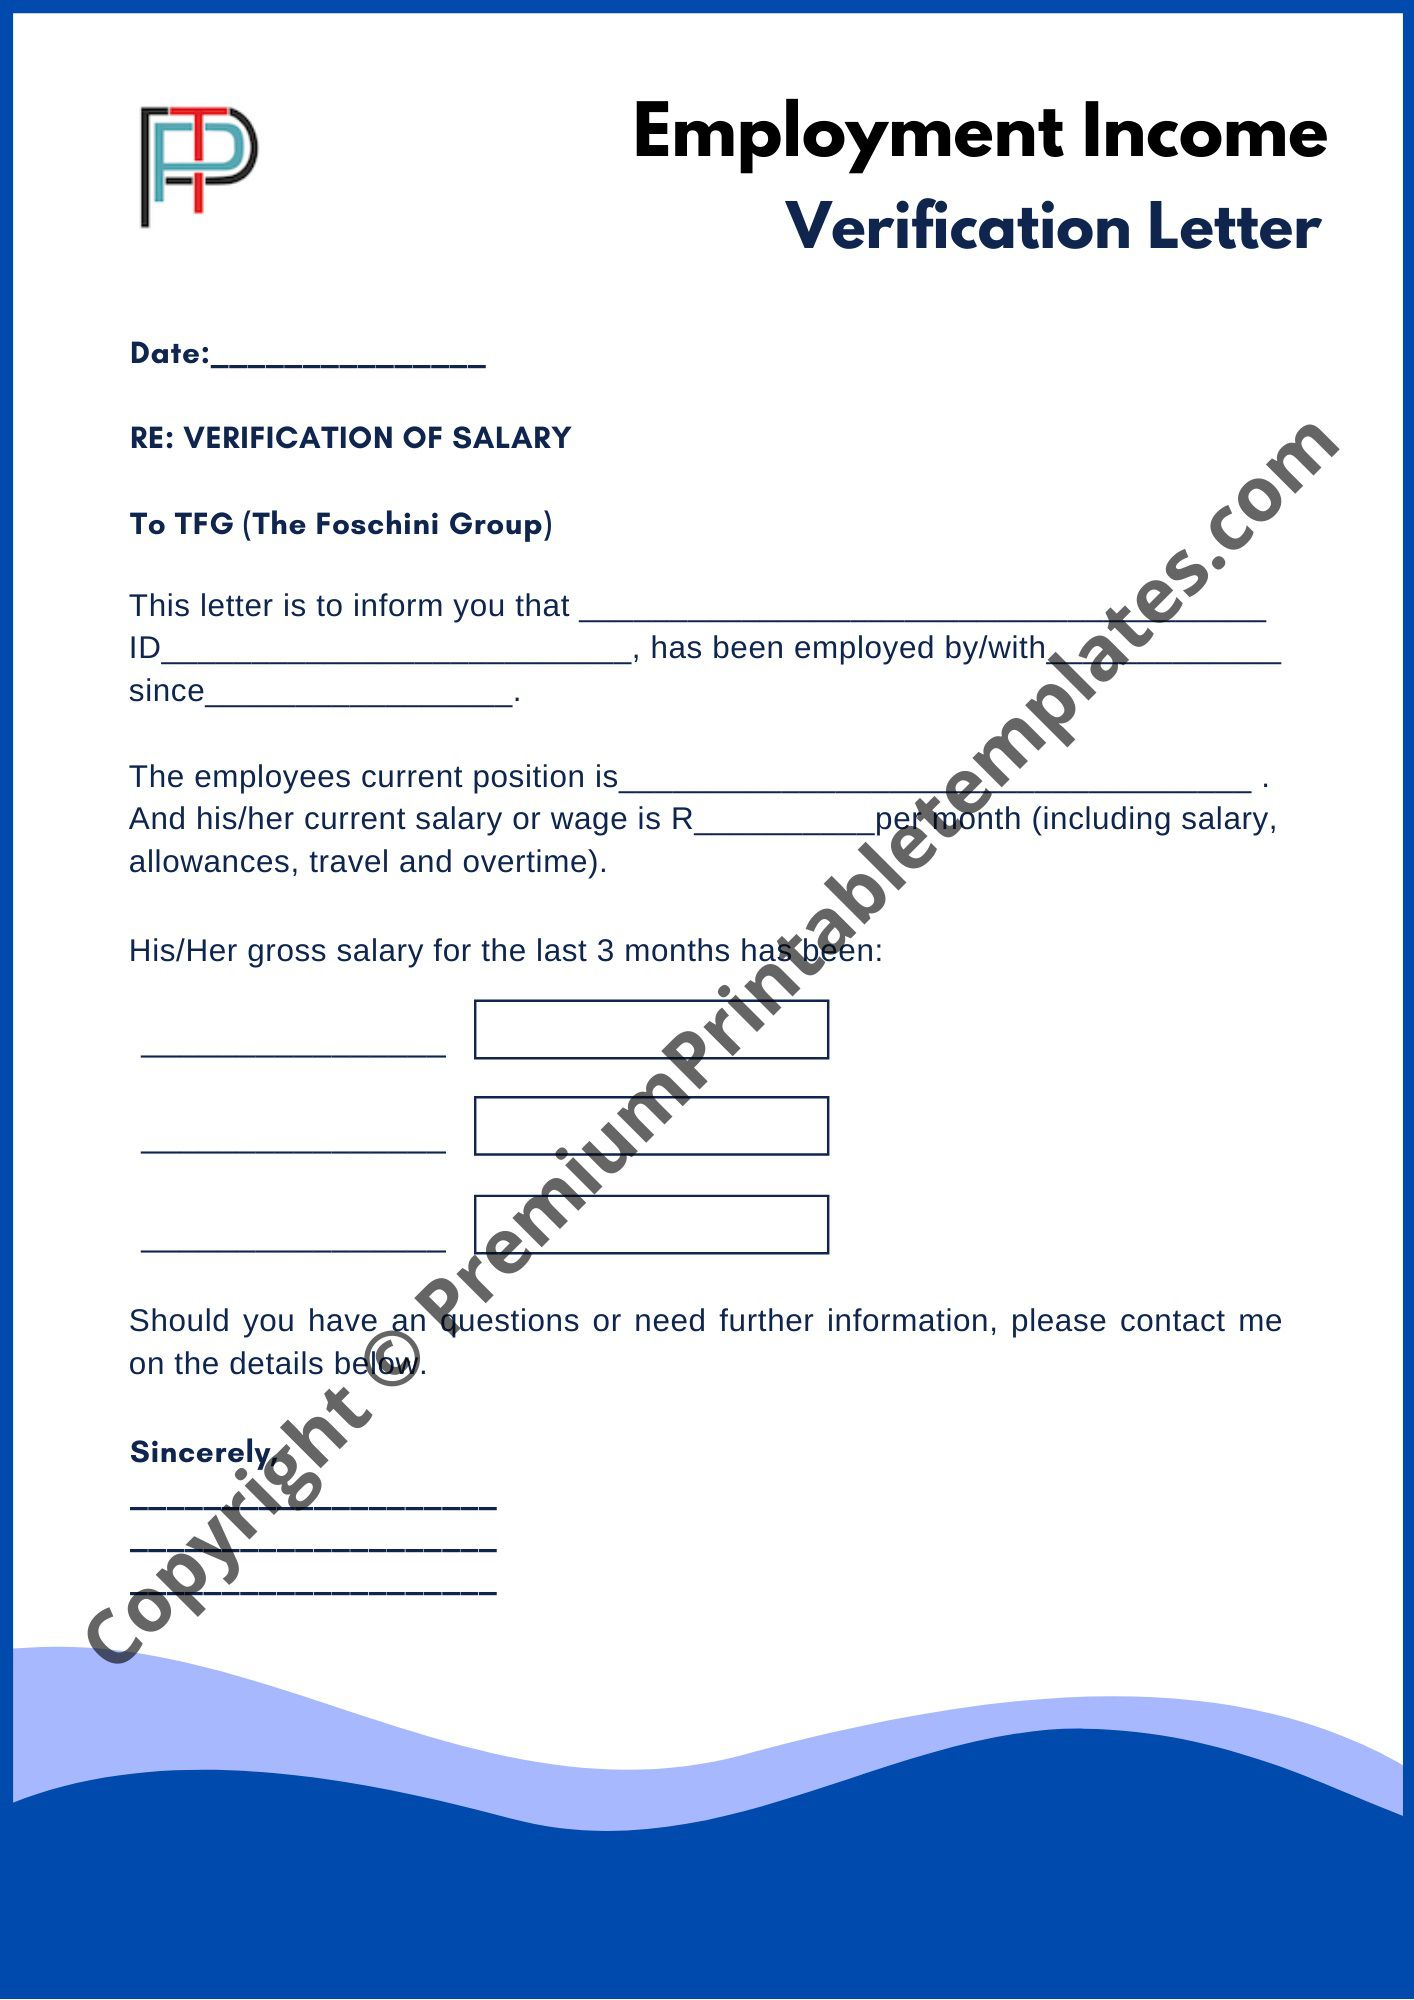 003 Stupendou Income Verification Letter Template Highest Clarity  Word From Employer Proof OfFull